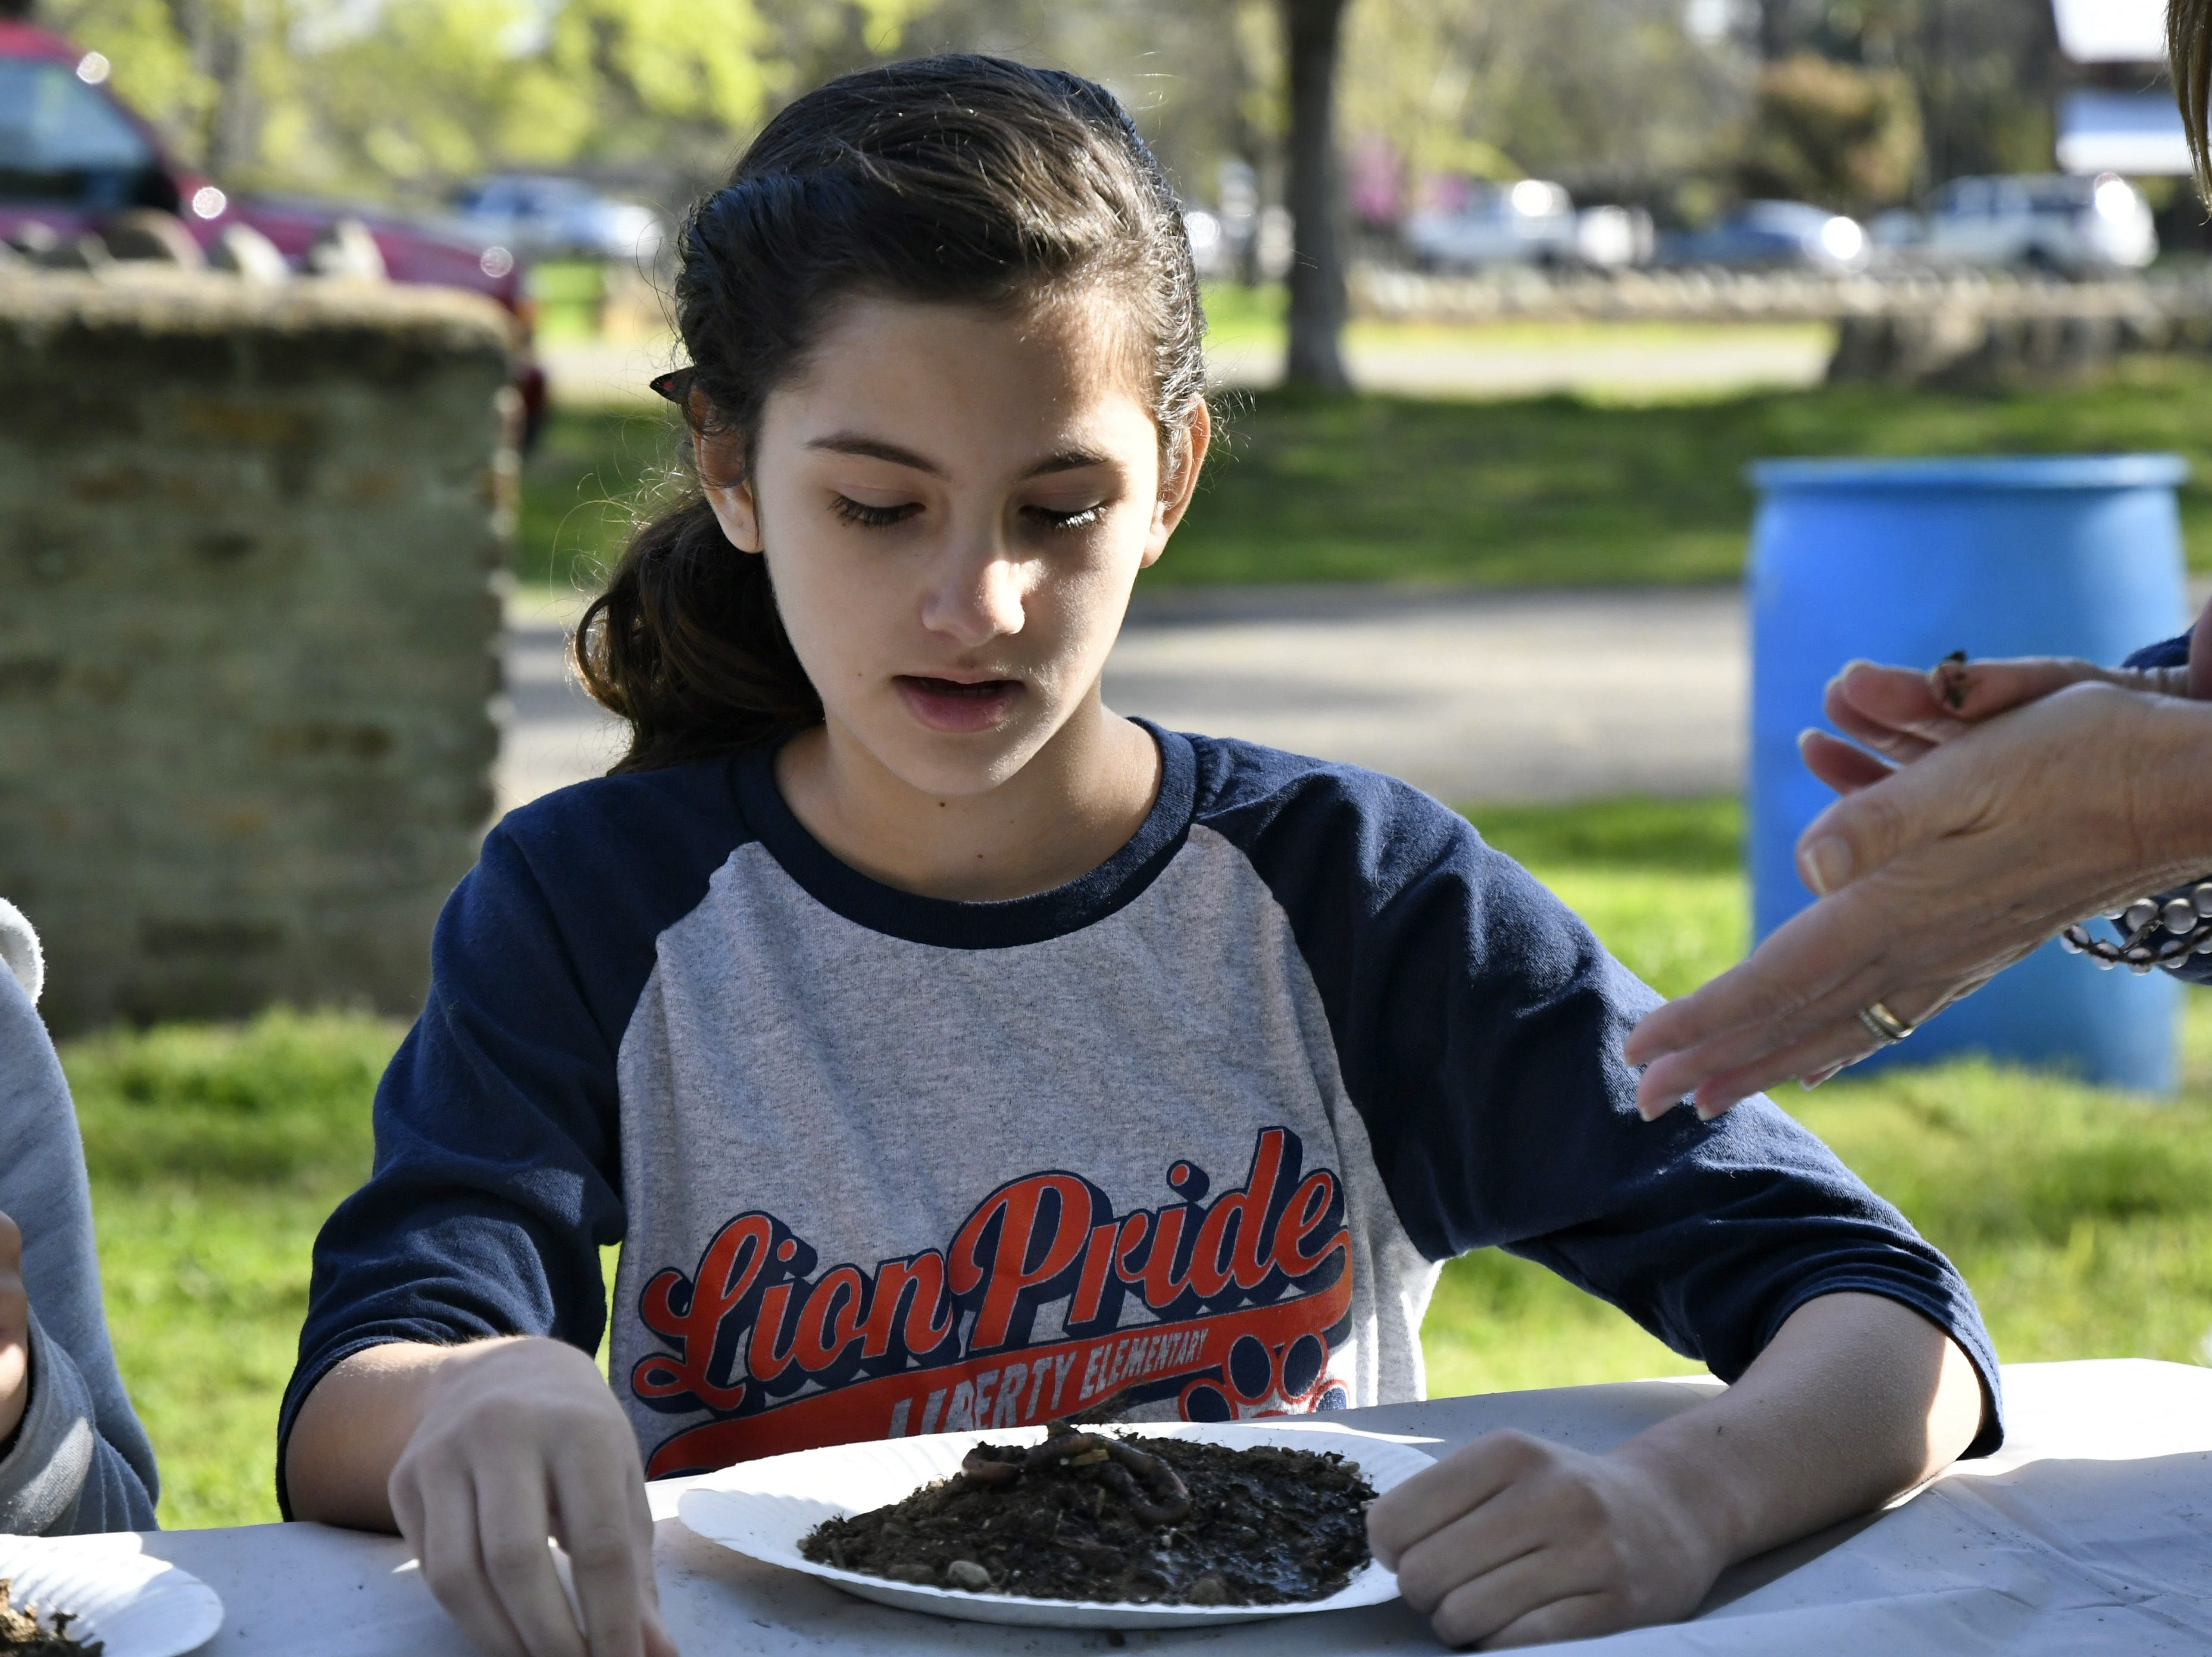 Liberty Elementary student Kira Davis looks at a worm through a magnifying glass at TCOE's Arbor Day celebration at Mooney Grove Park on Thursday, March 28, 2019.